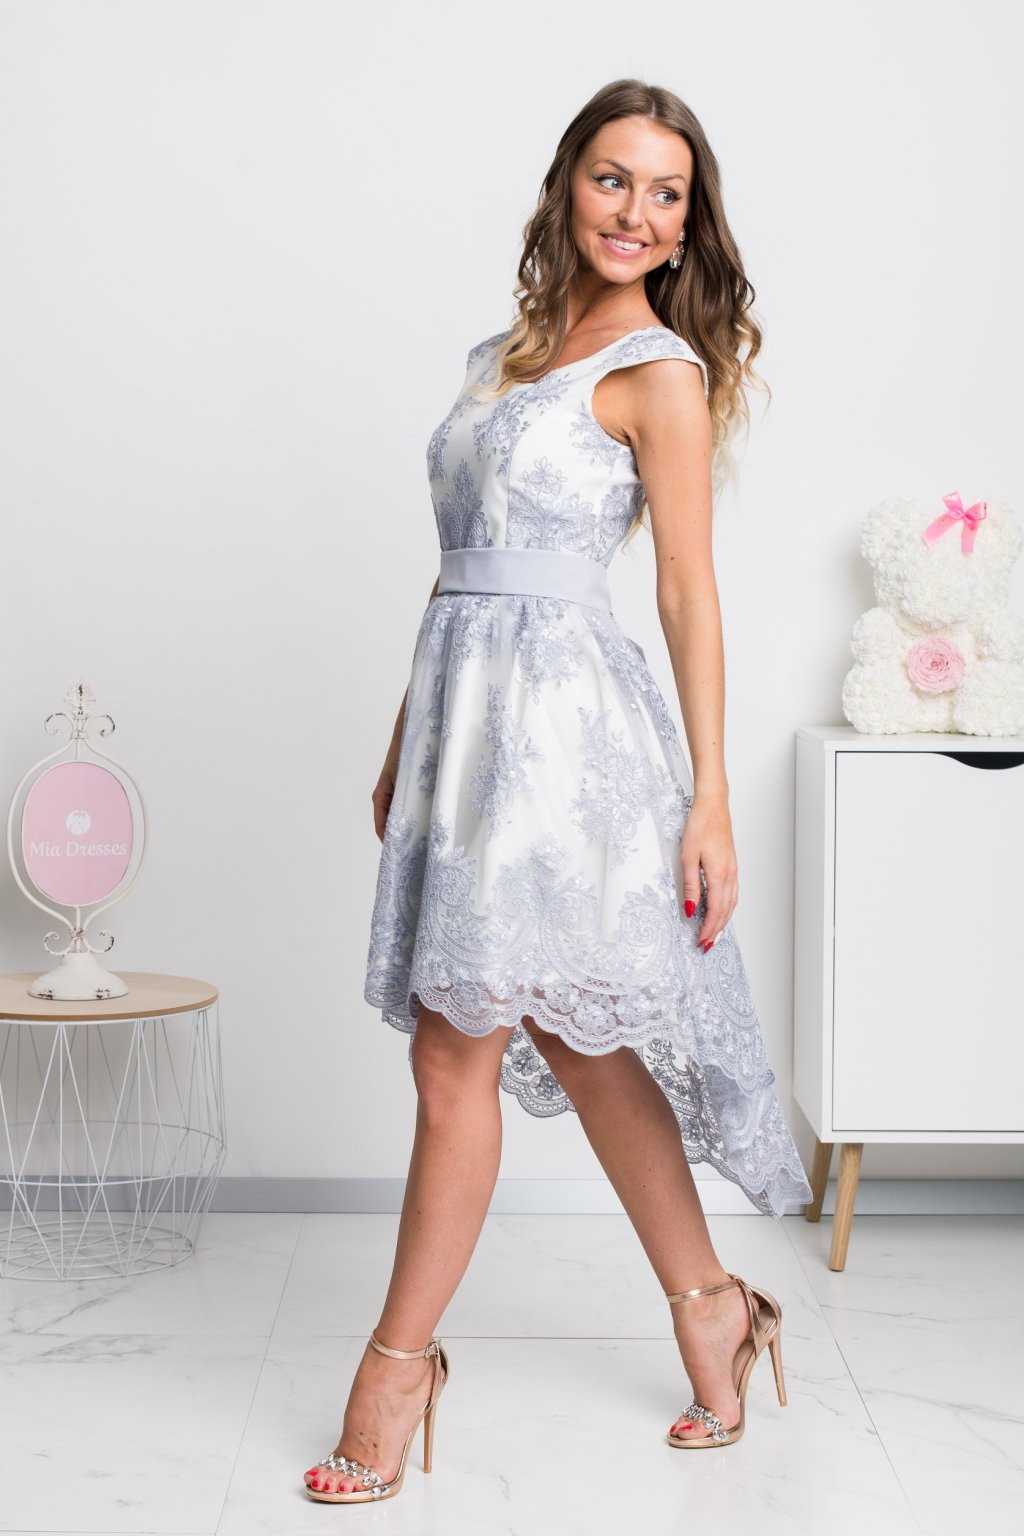 Ivory asymmetric dress with gray lace